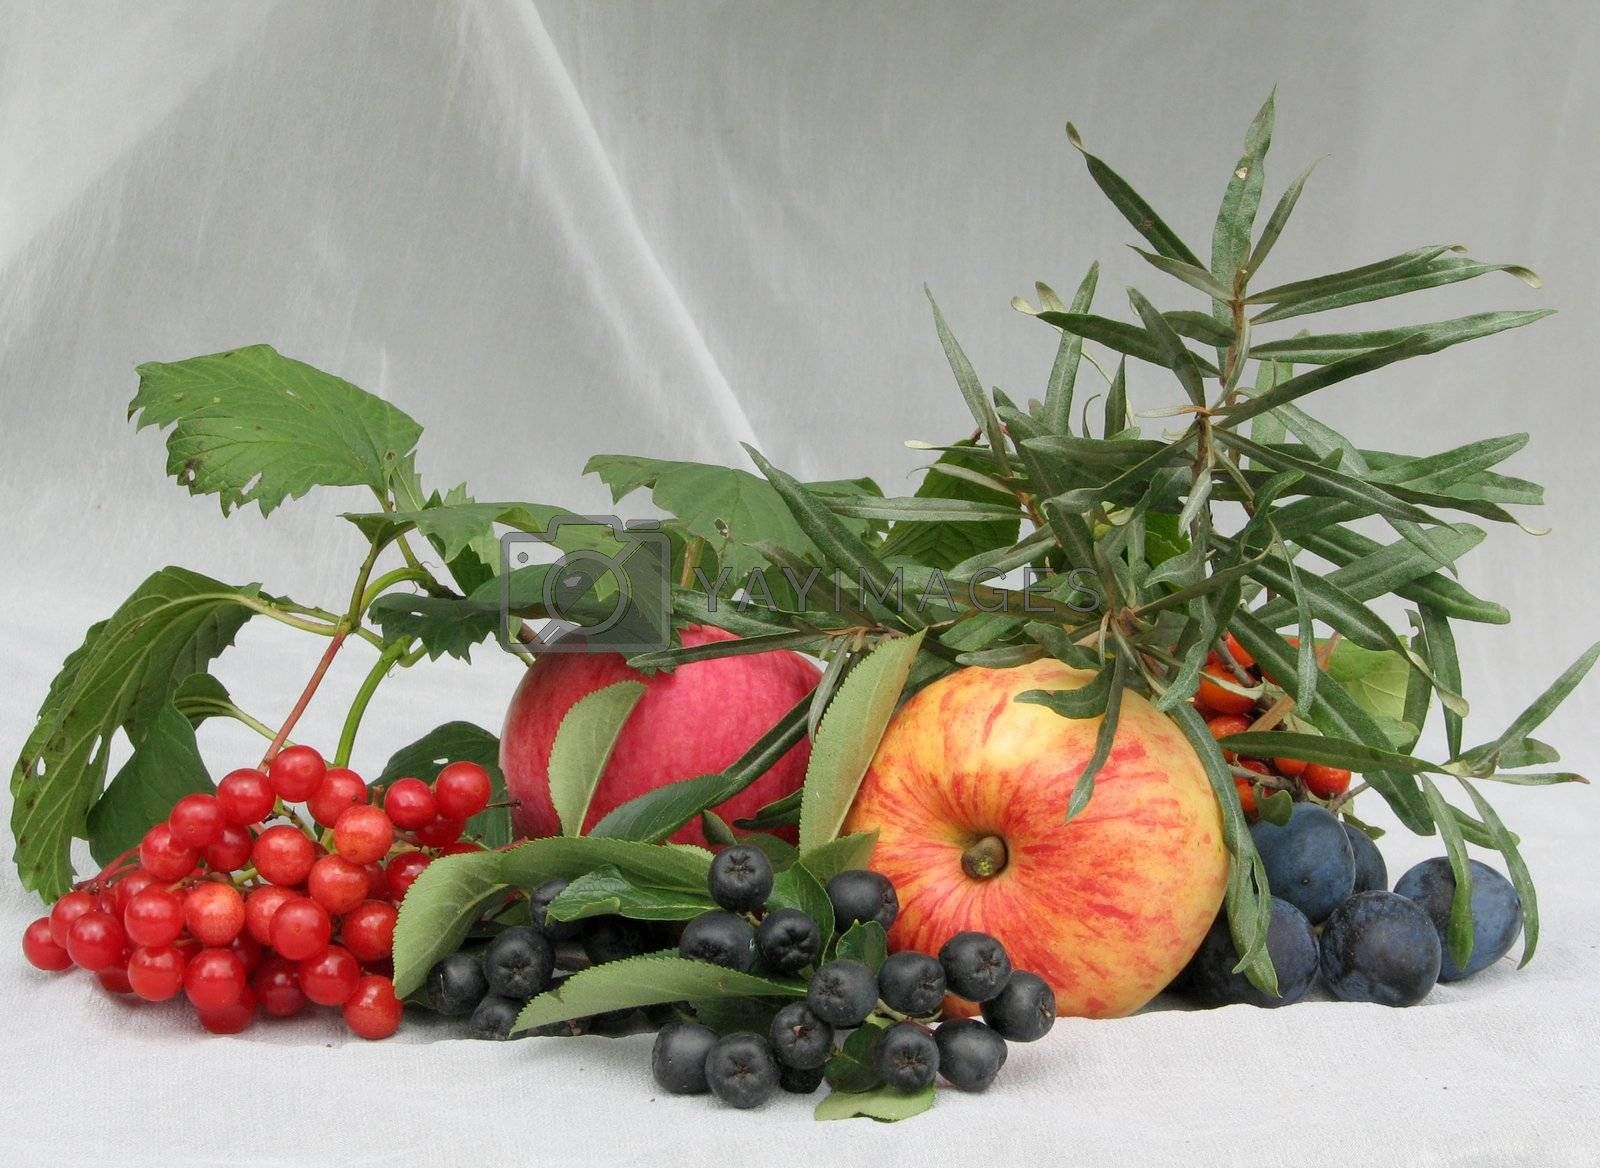 Berries and fruit on a background of a white curtain